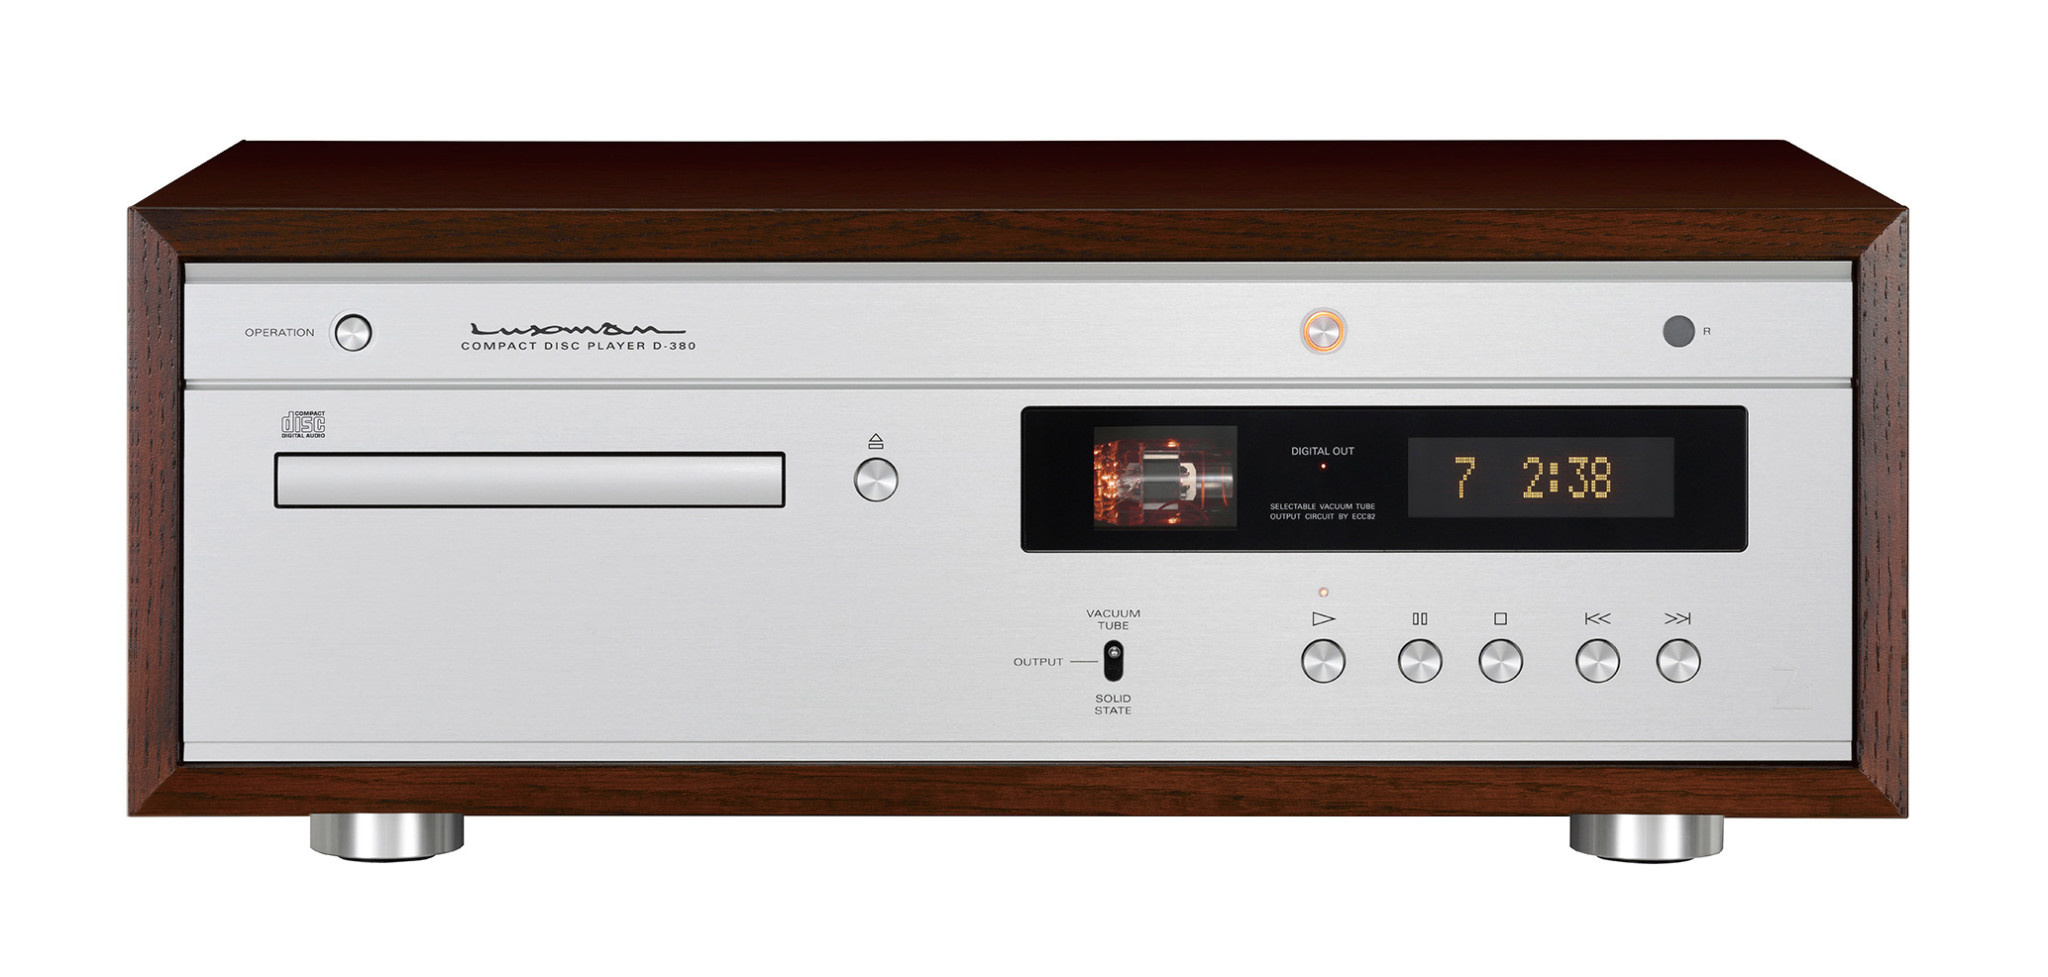 Luxman Vacuum Tube / Solid State CD-Player D-380